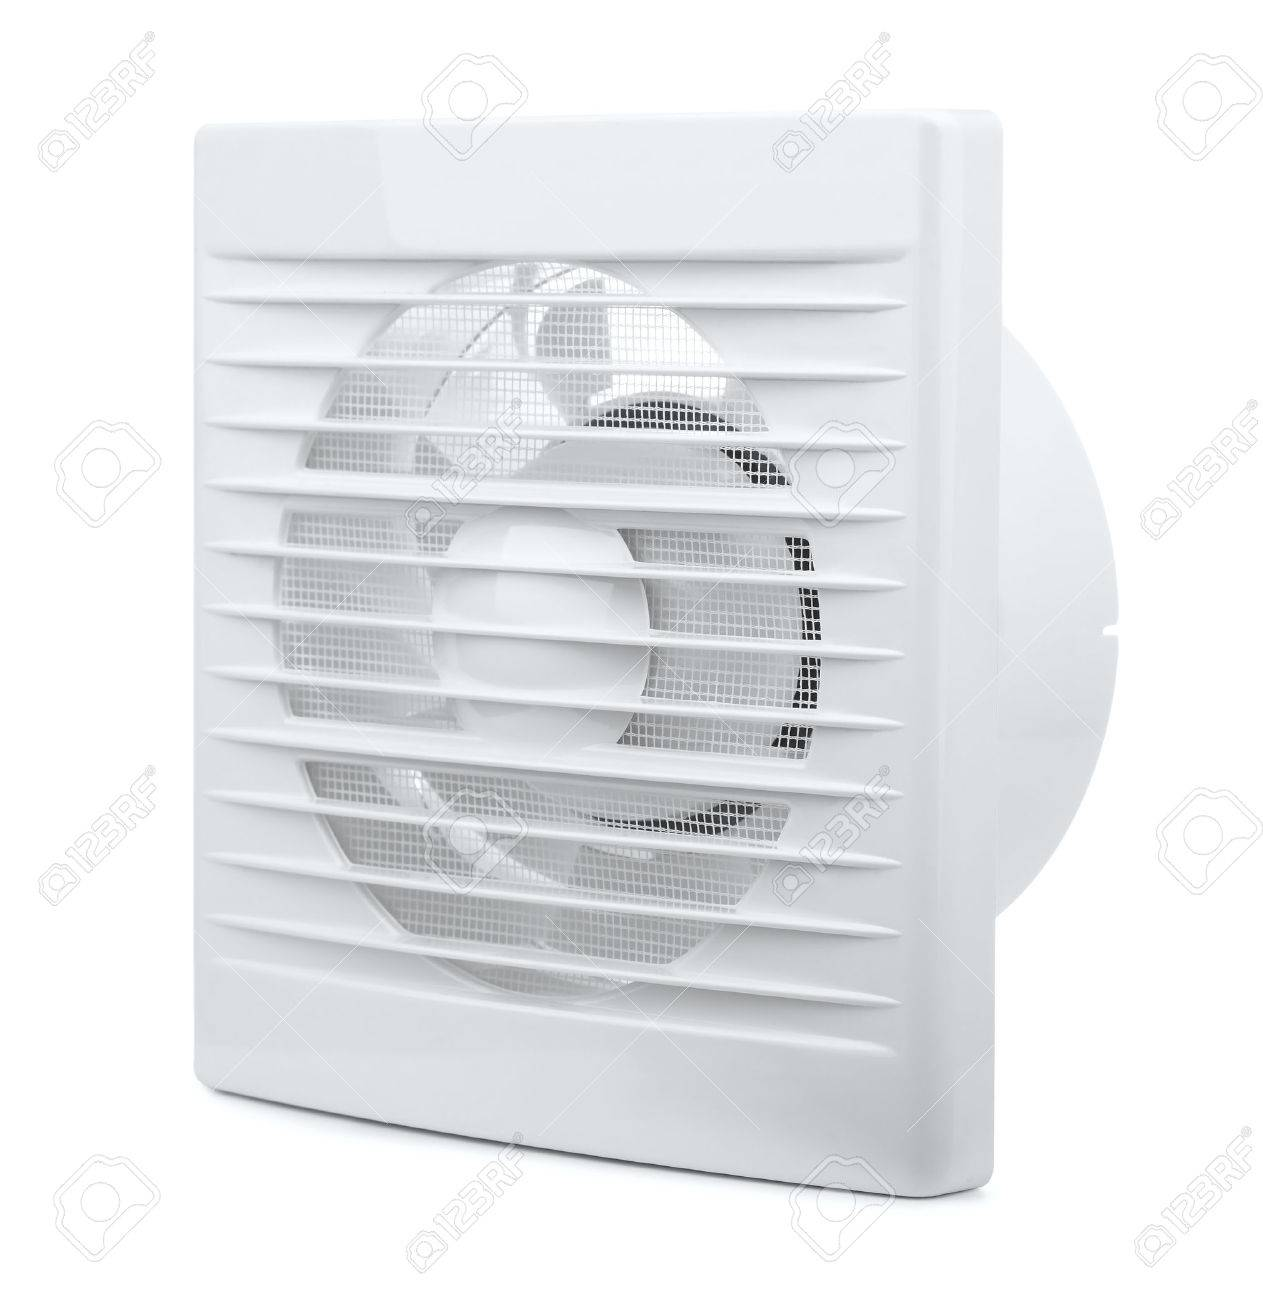 Wall electric extractor fan isolated on white - 51014773